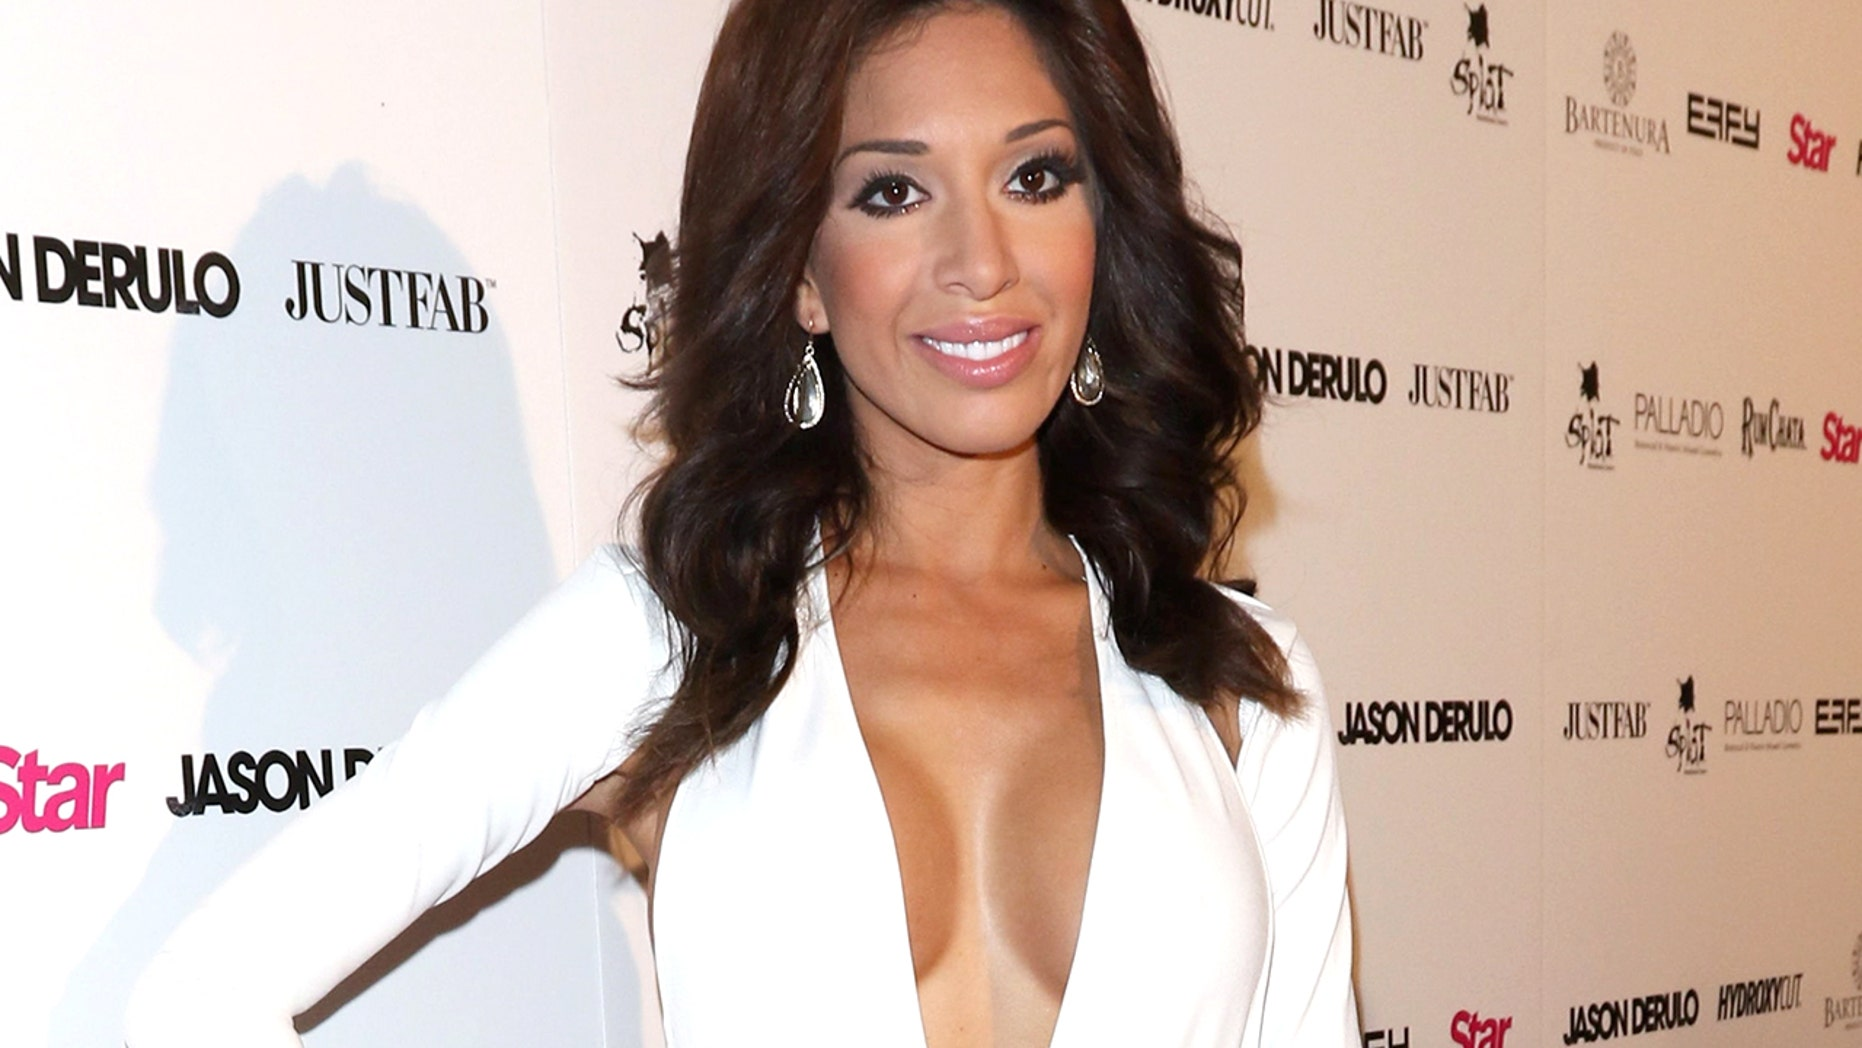 Farrah Abraham typically wears more revealing looks such as this white dress with a plunging neckline.